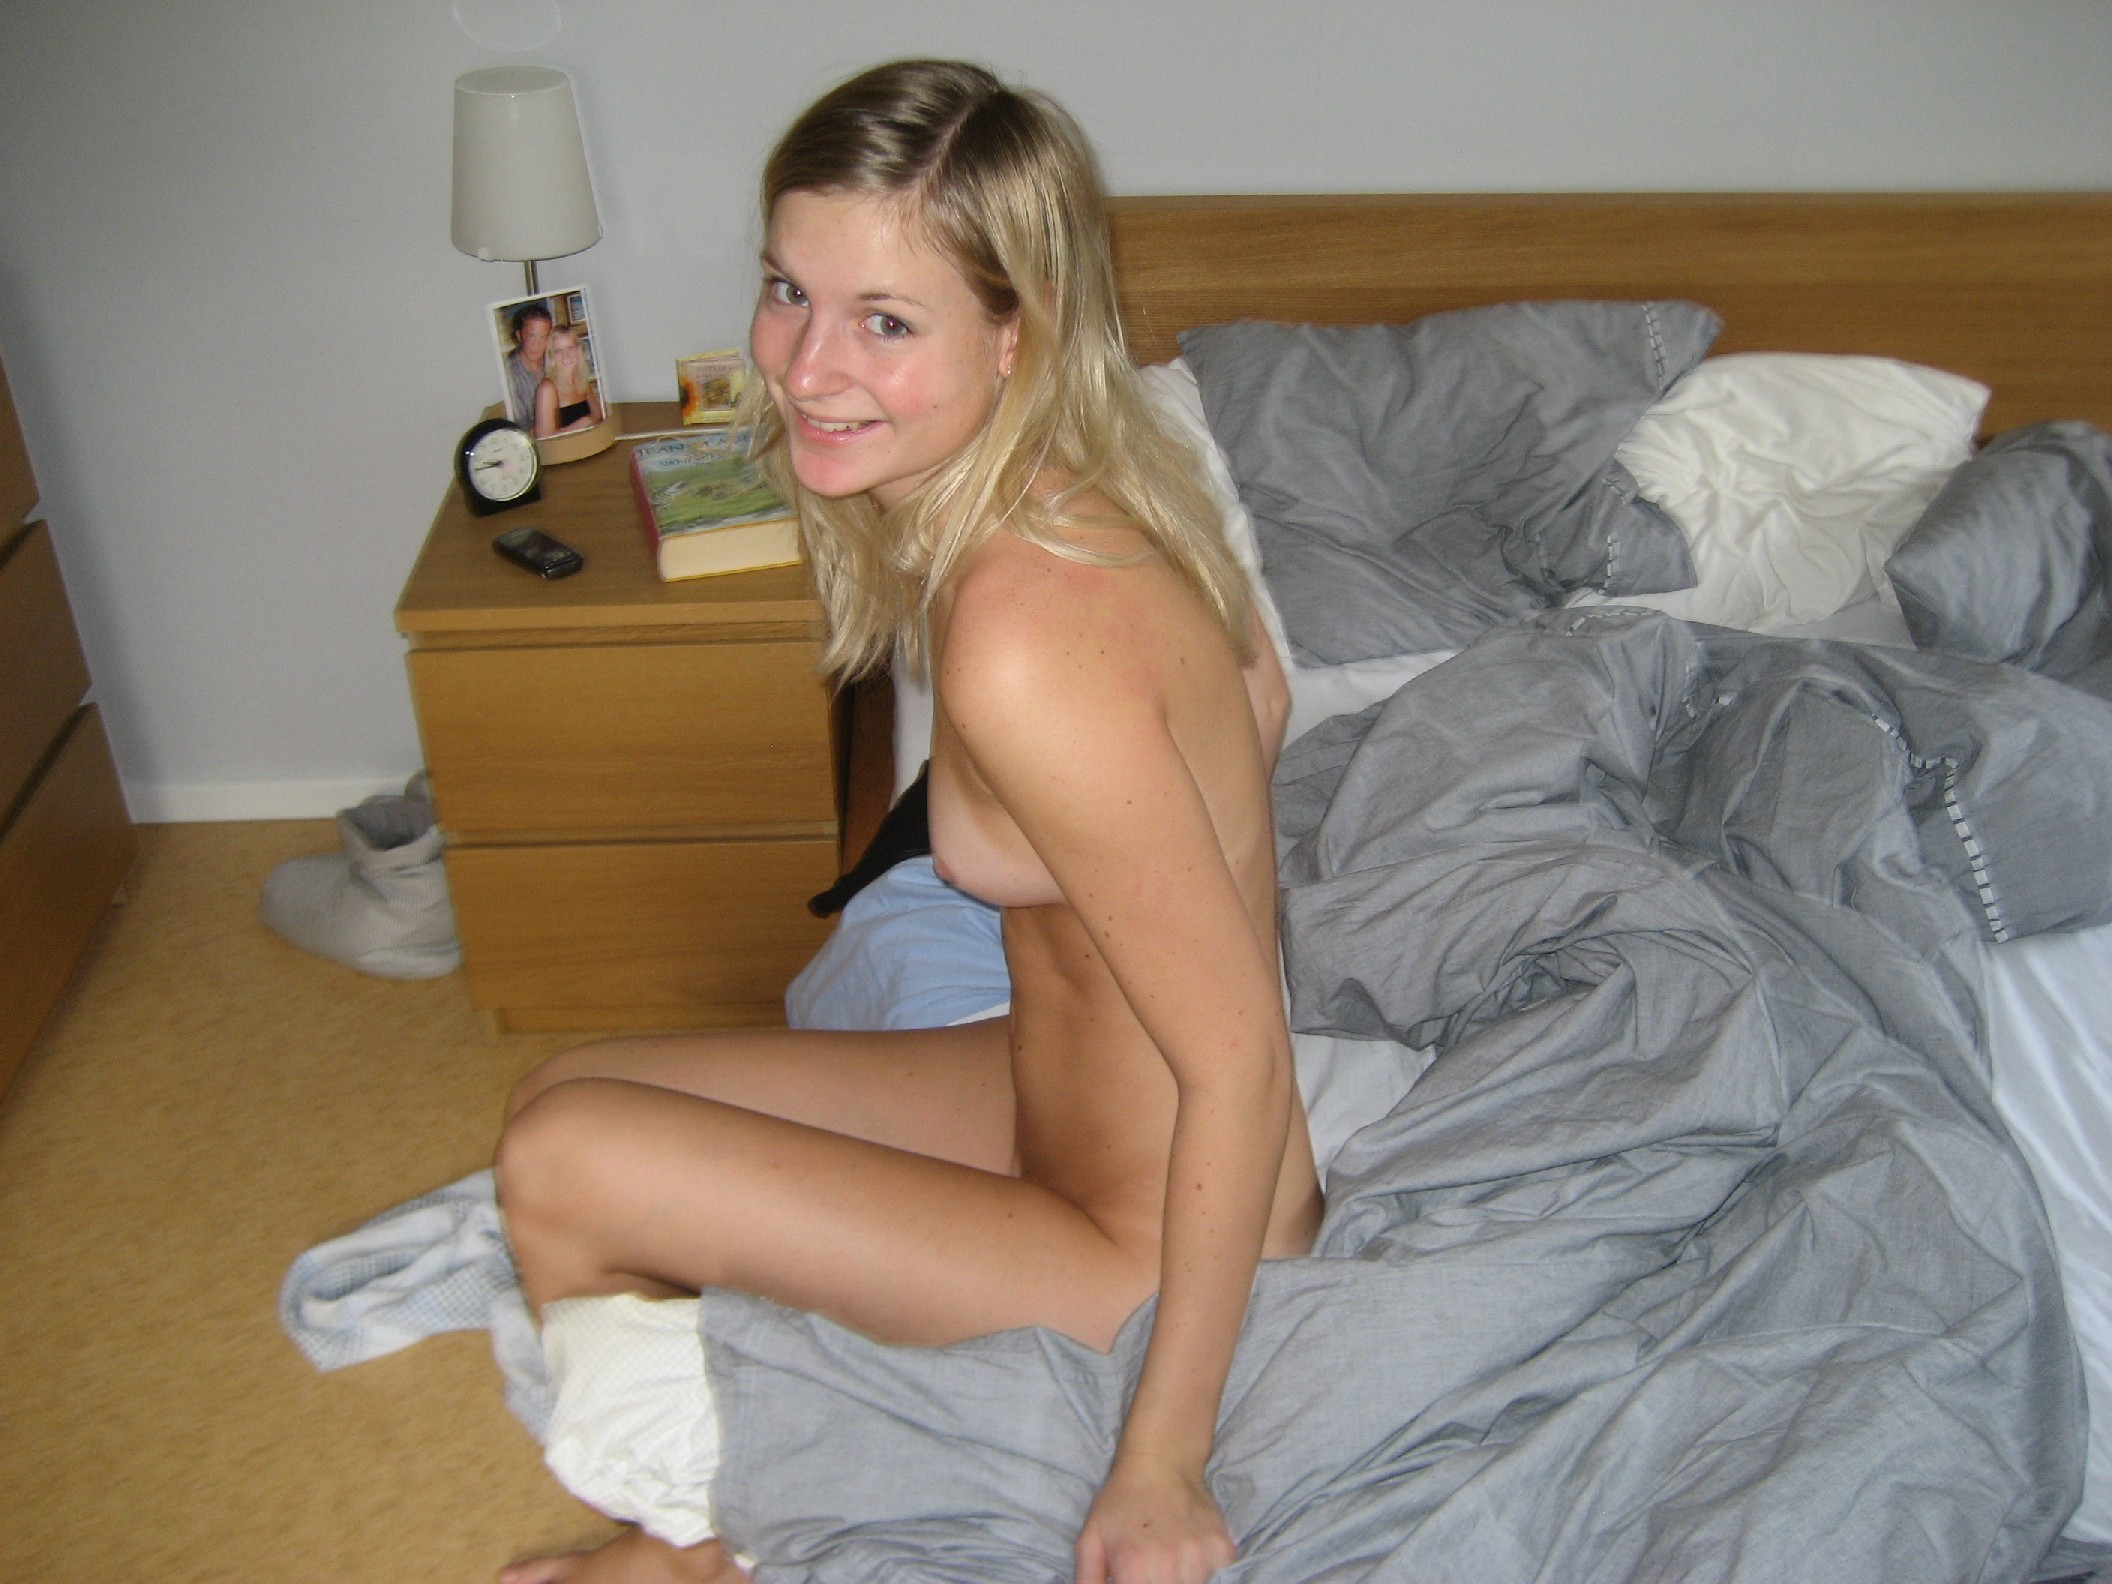 For pictures naked girls in sweden apologise